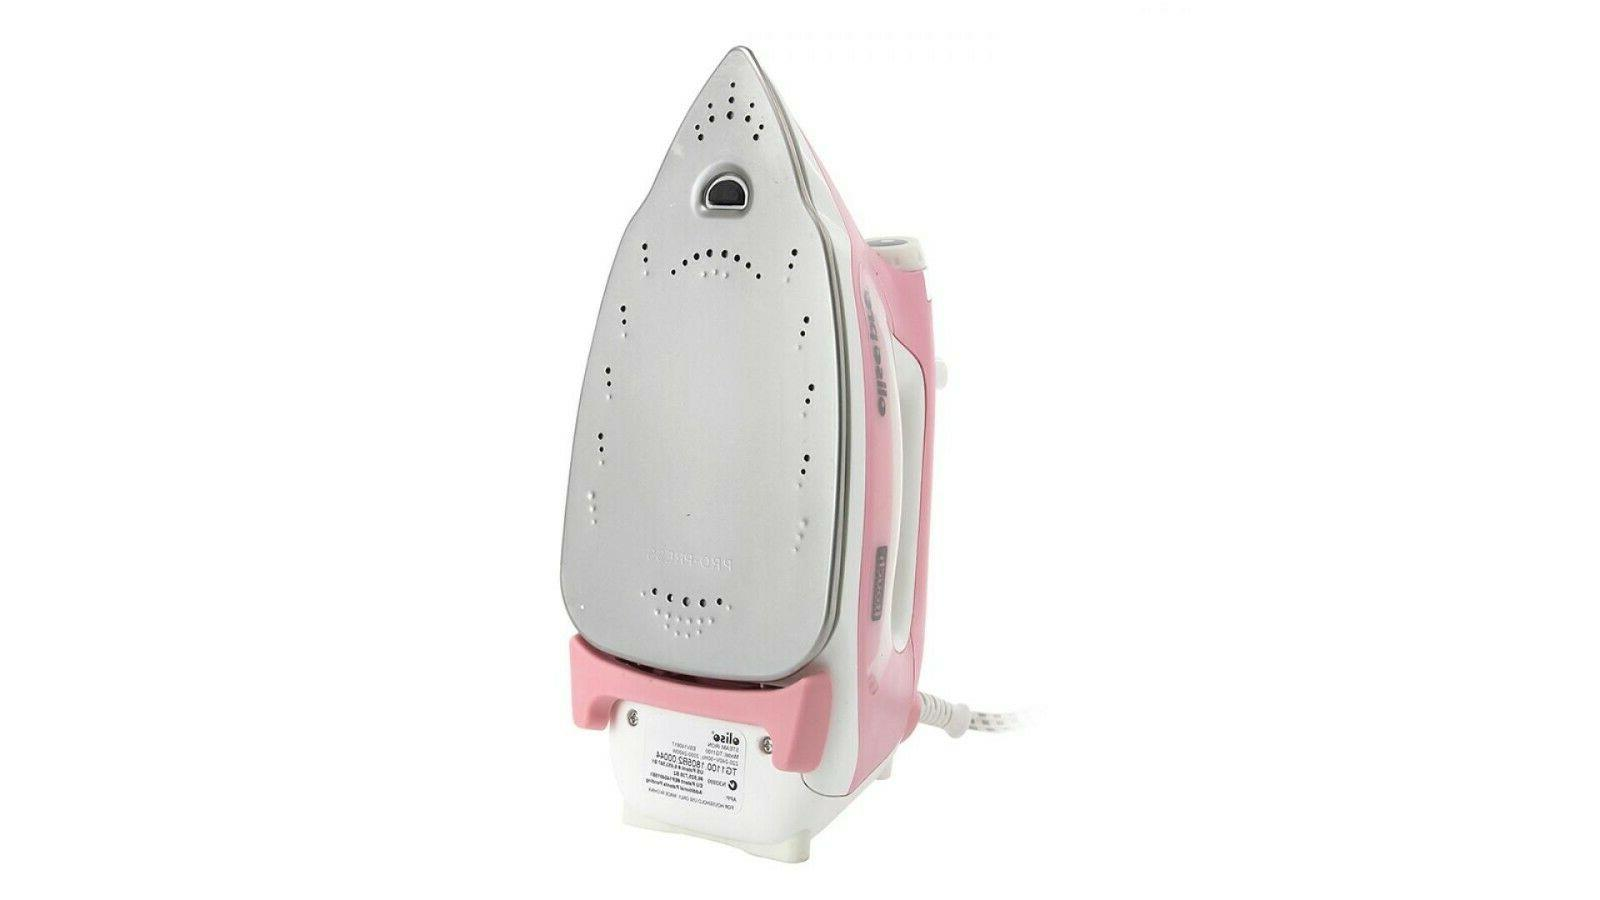 Oliso Iron TG1600 Pro iTouch Technology Limited PINK - NEW